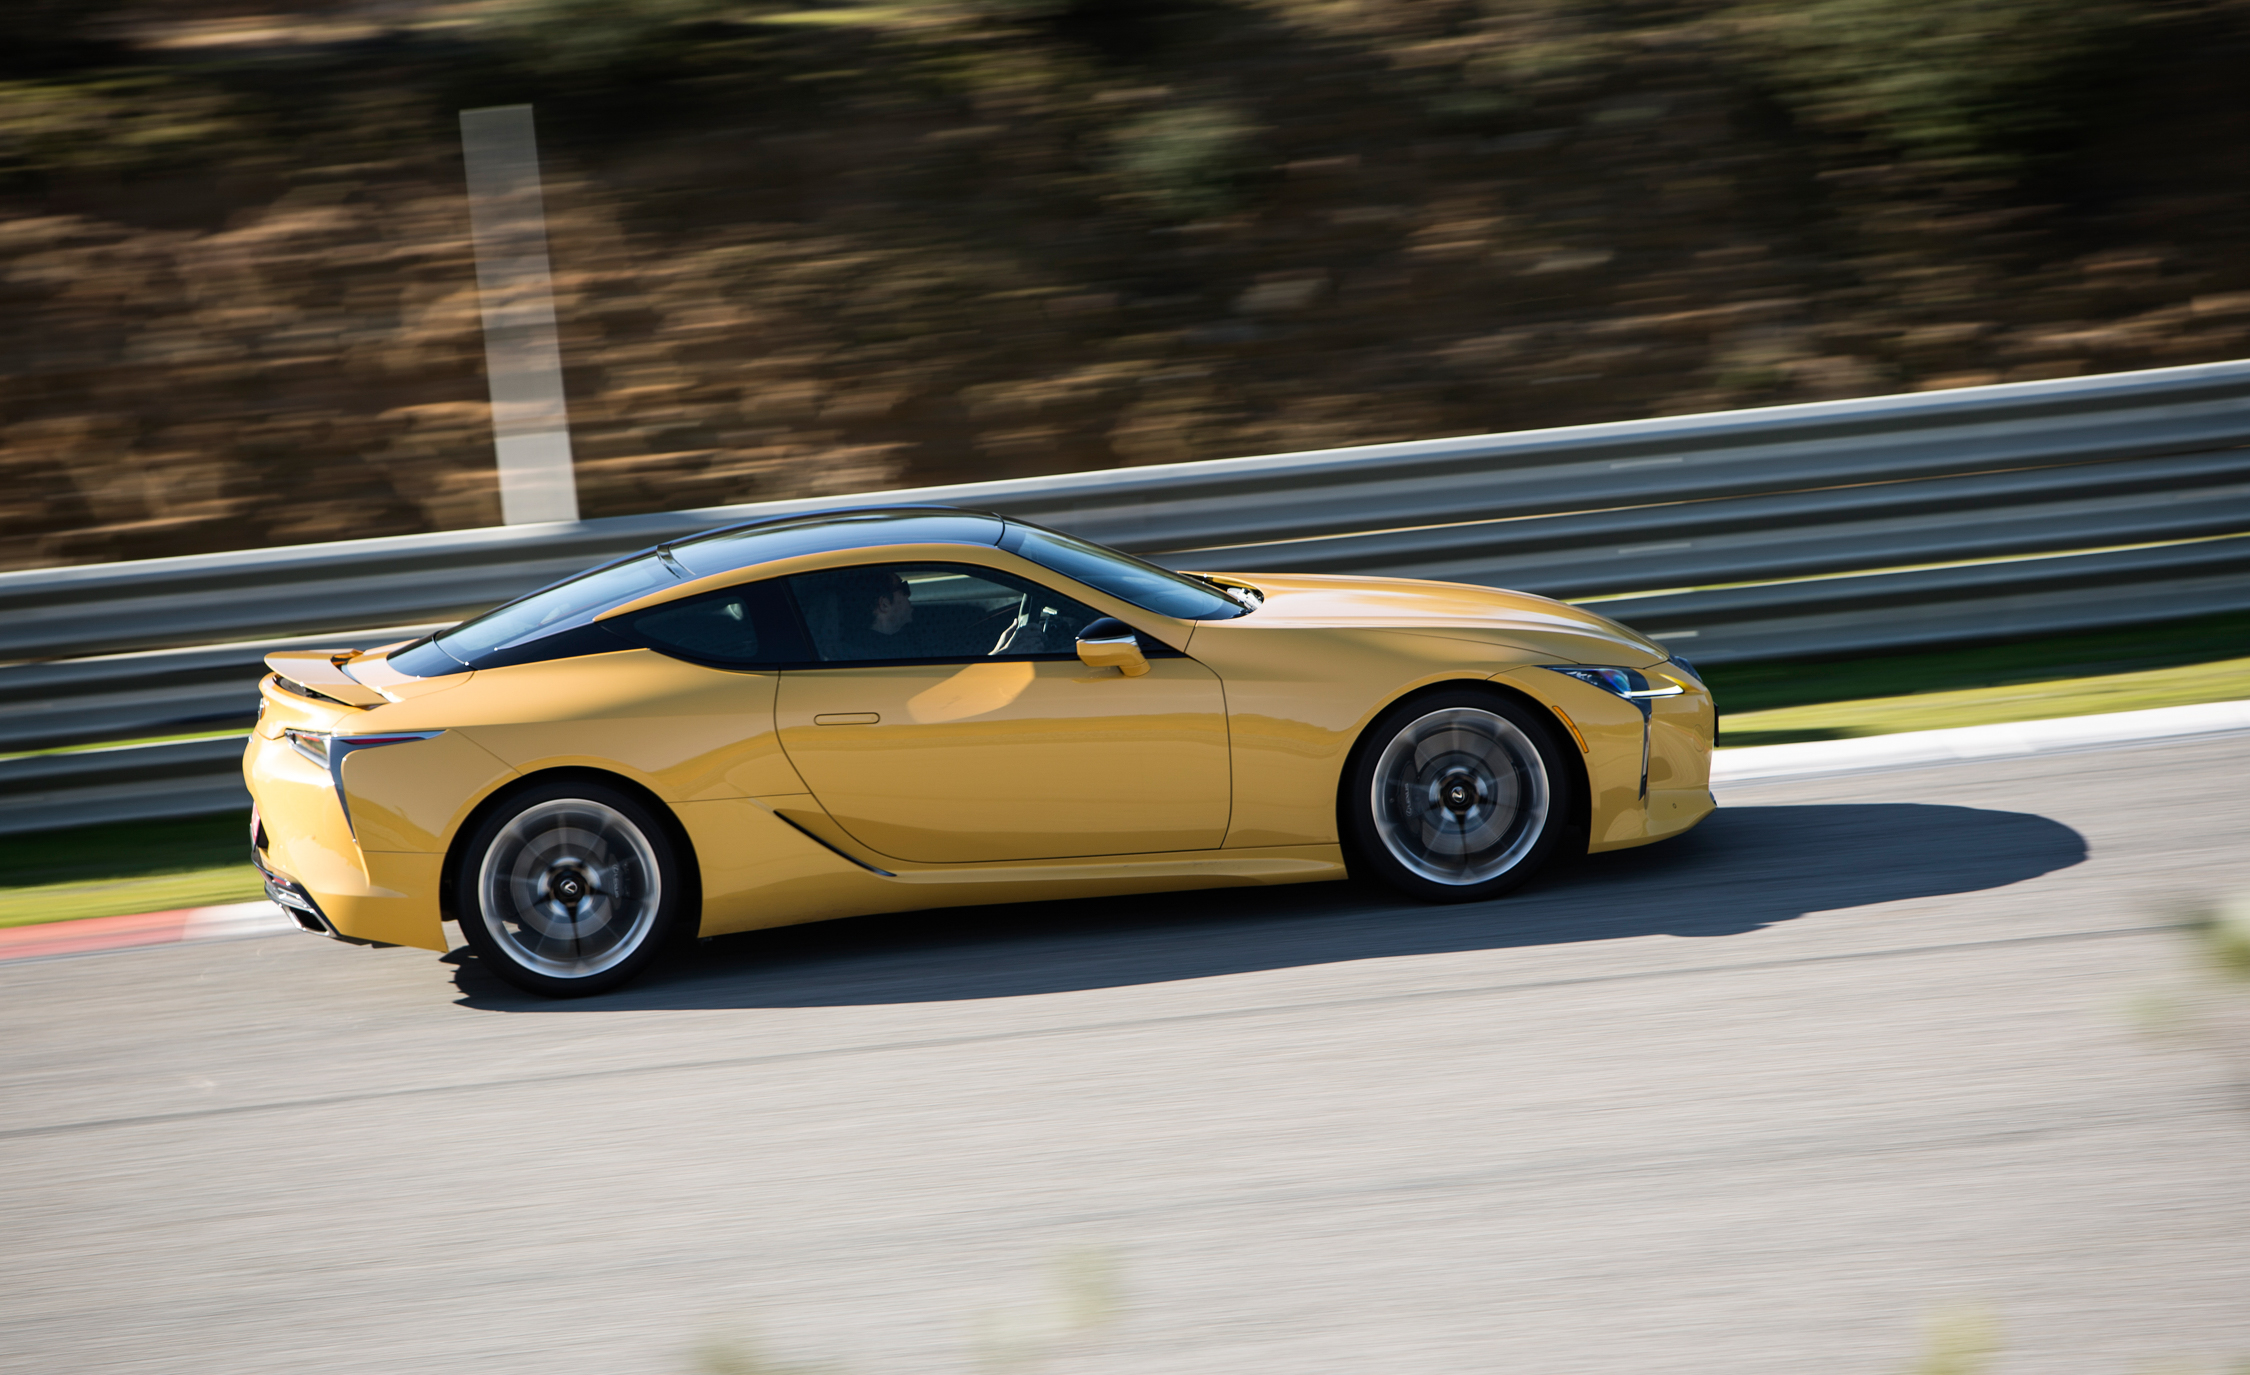 2018 Lexus Lc 500 Yellow Test Drive Side Corner (View 11 of 84)